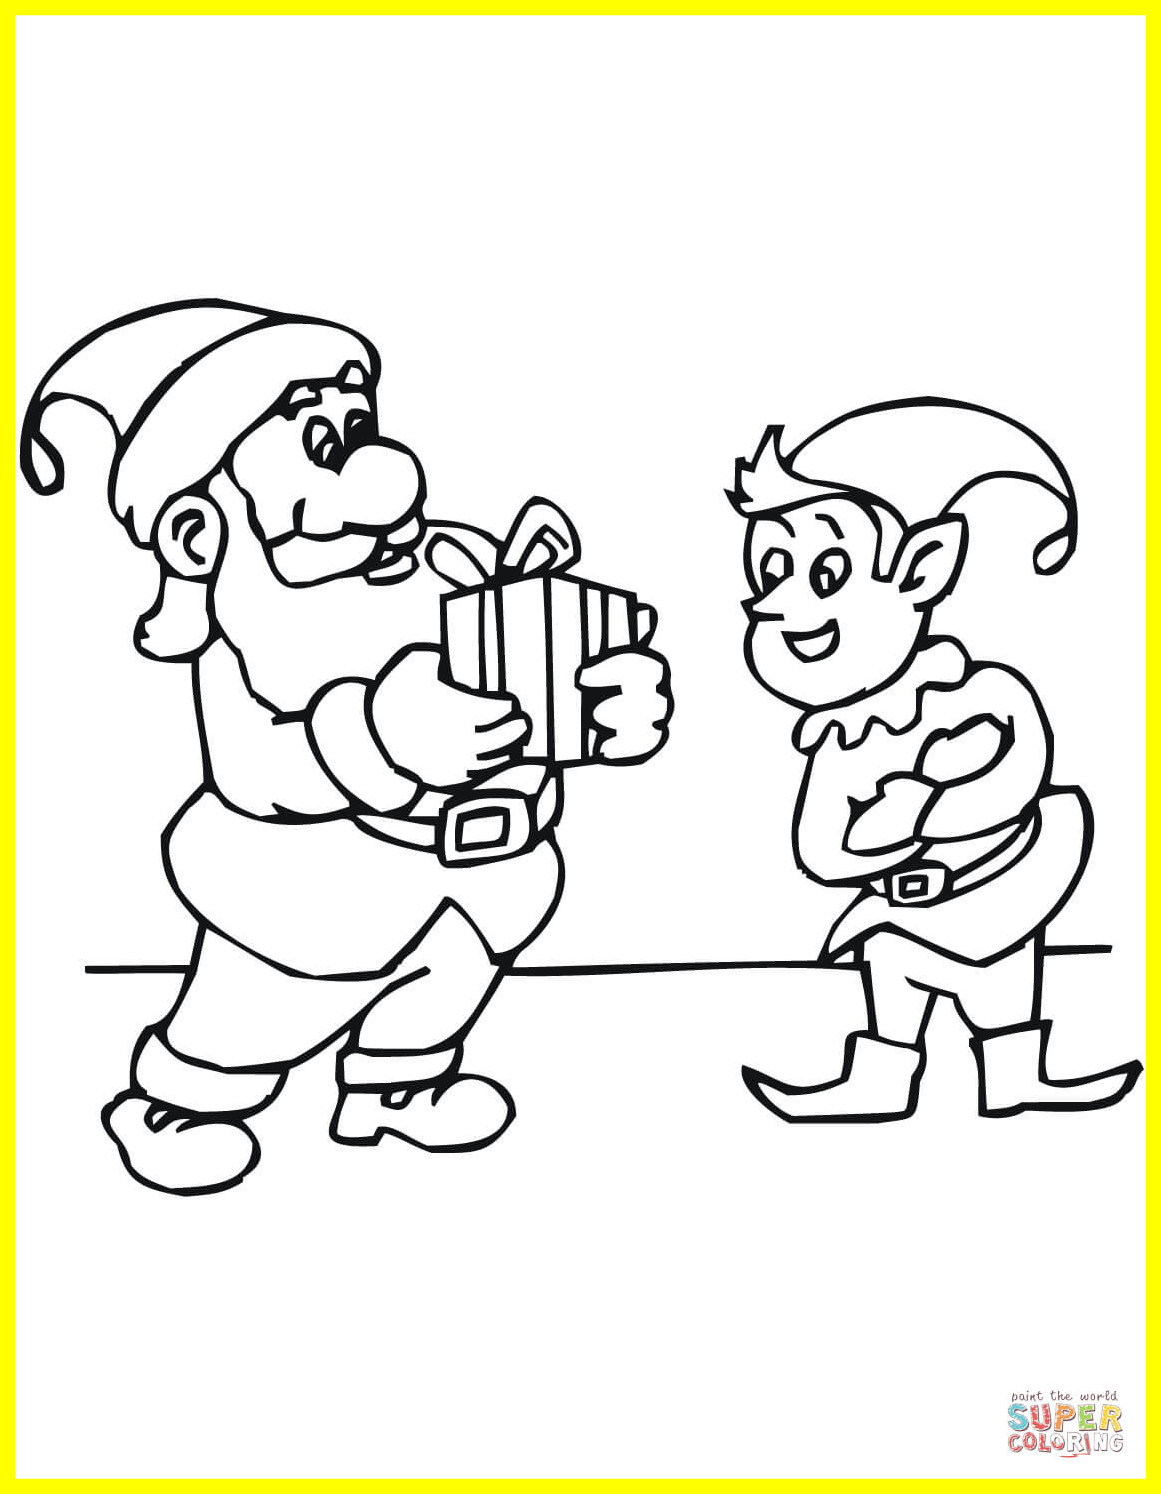 Santa And His Elves Coloring Pages With Santas Cleanup Page Sheet Christmas